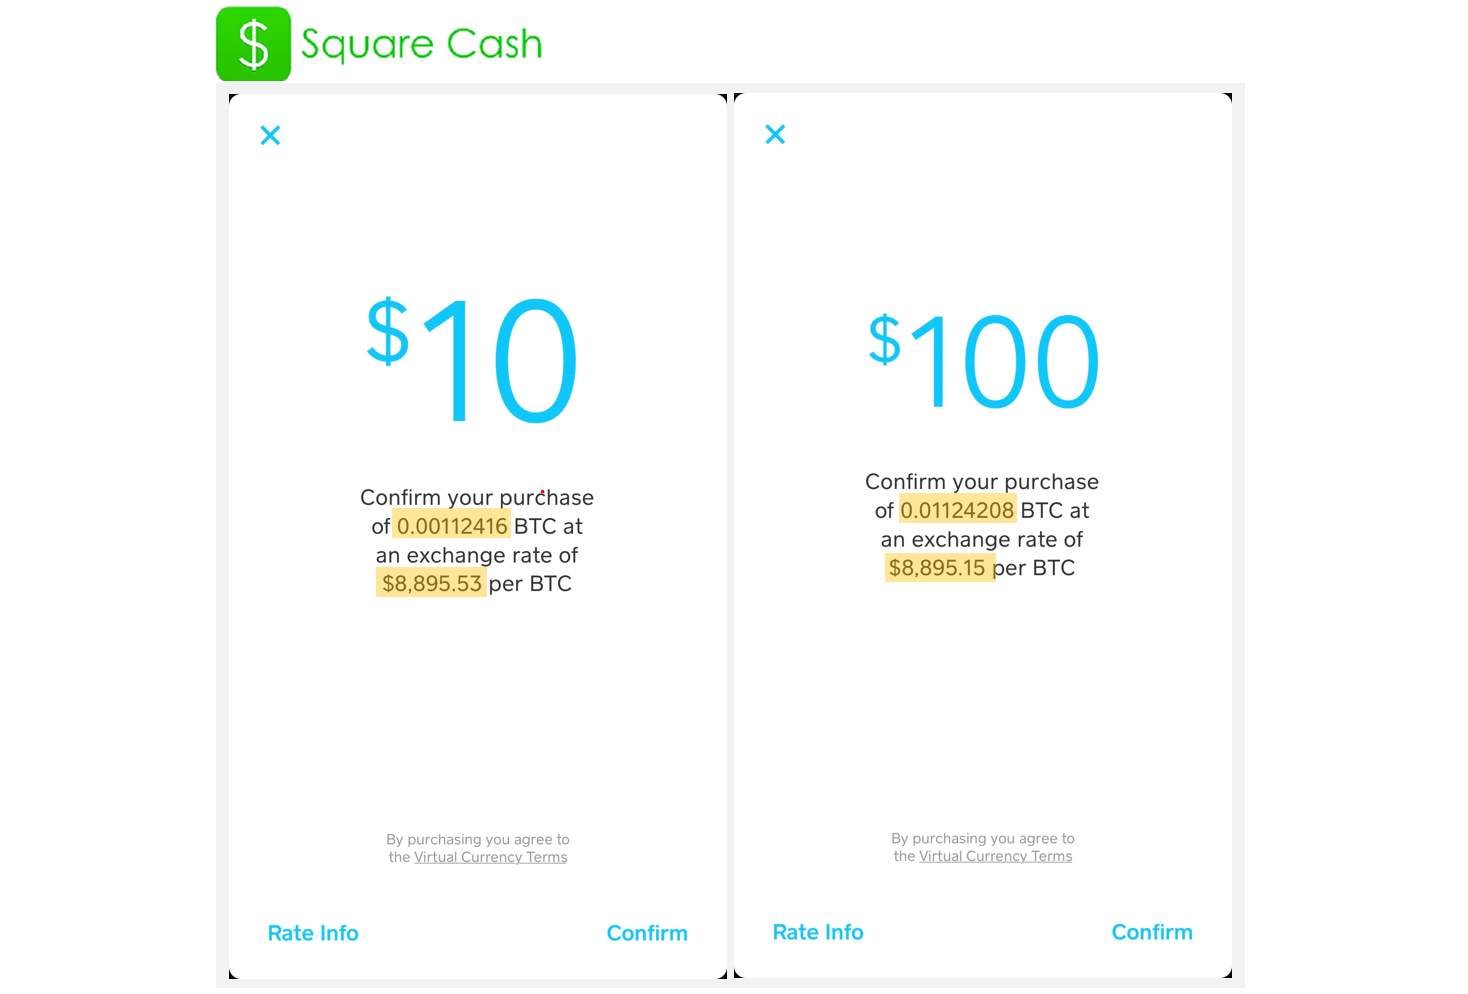 I got 23 extra bitcoin with square cash vs coinbase this gives a bit of insight into how much an intended purchase amount actually impacts or doesnt impact the overall exchange price ccuart Choice Image